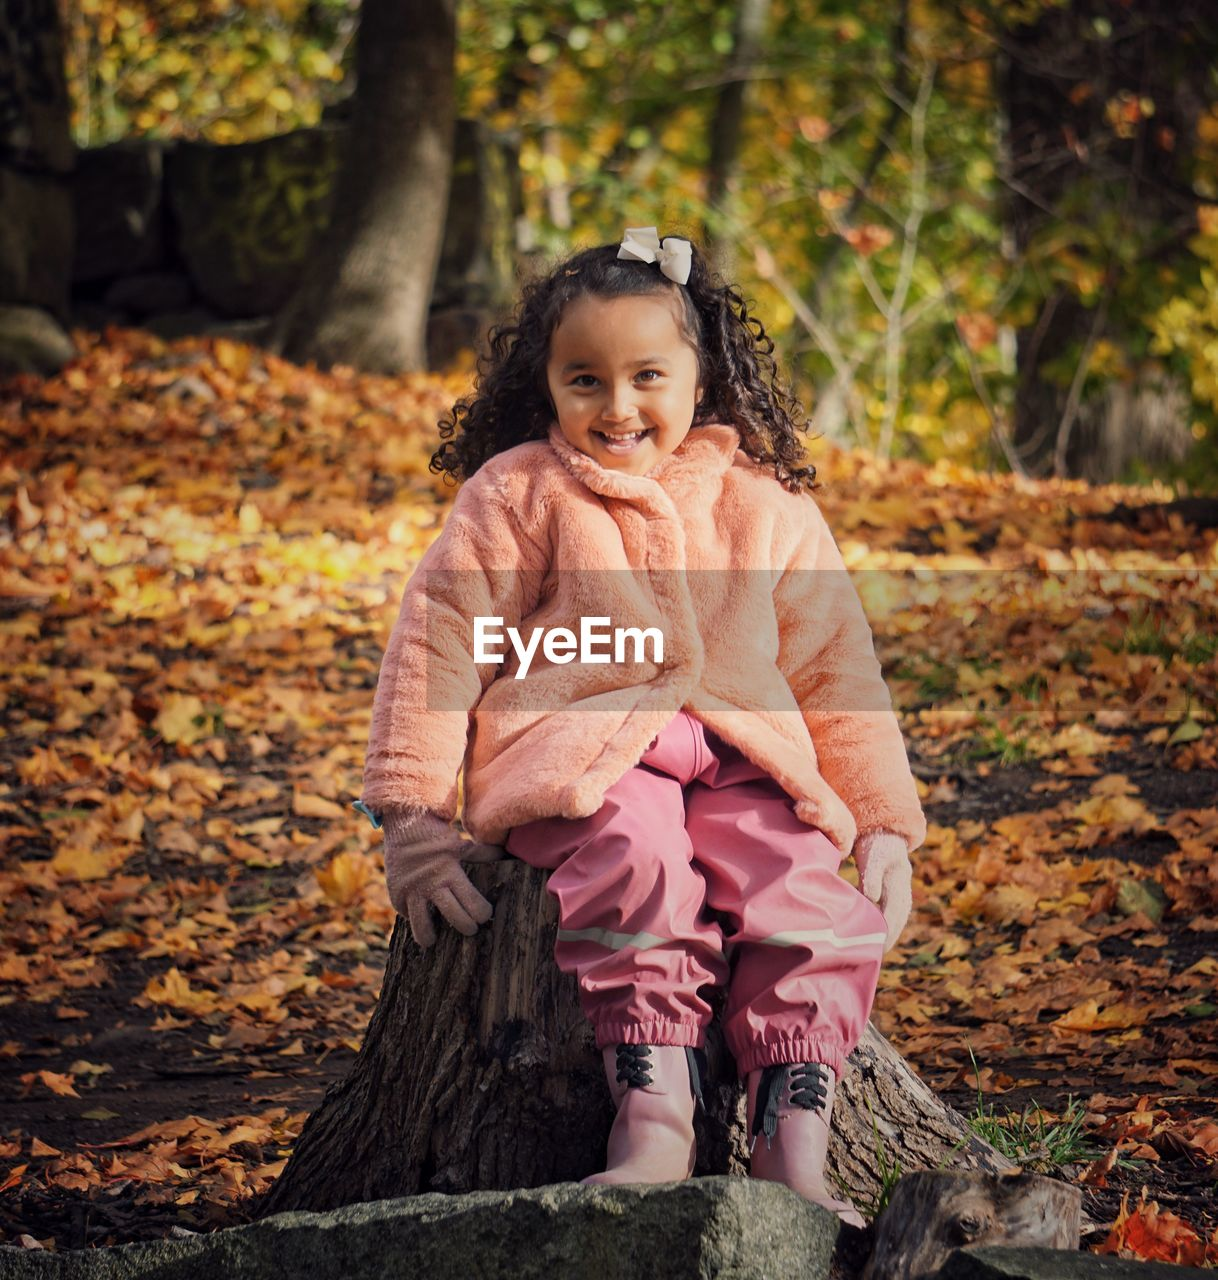 Portrait of smiling girl sitting on tree stump during autumn